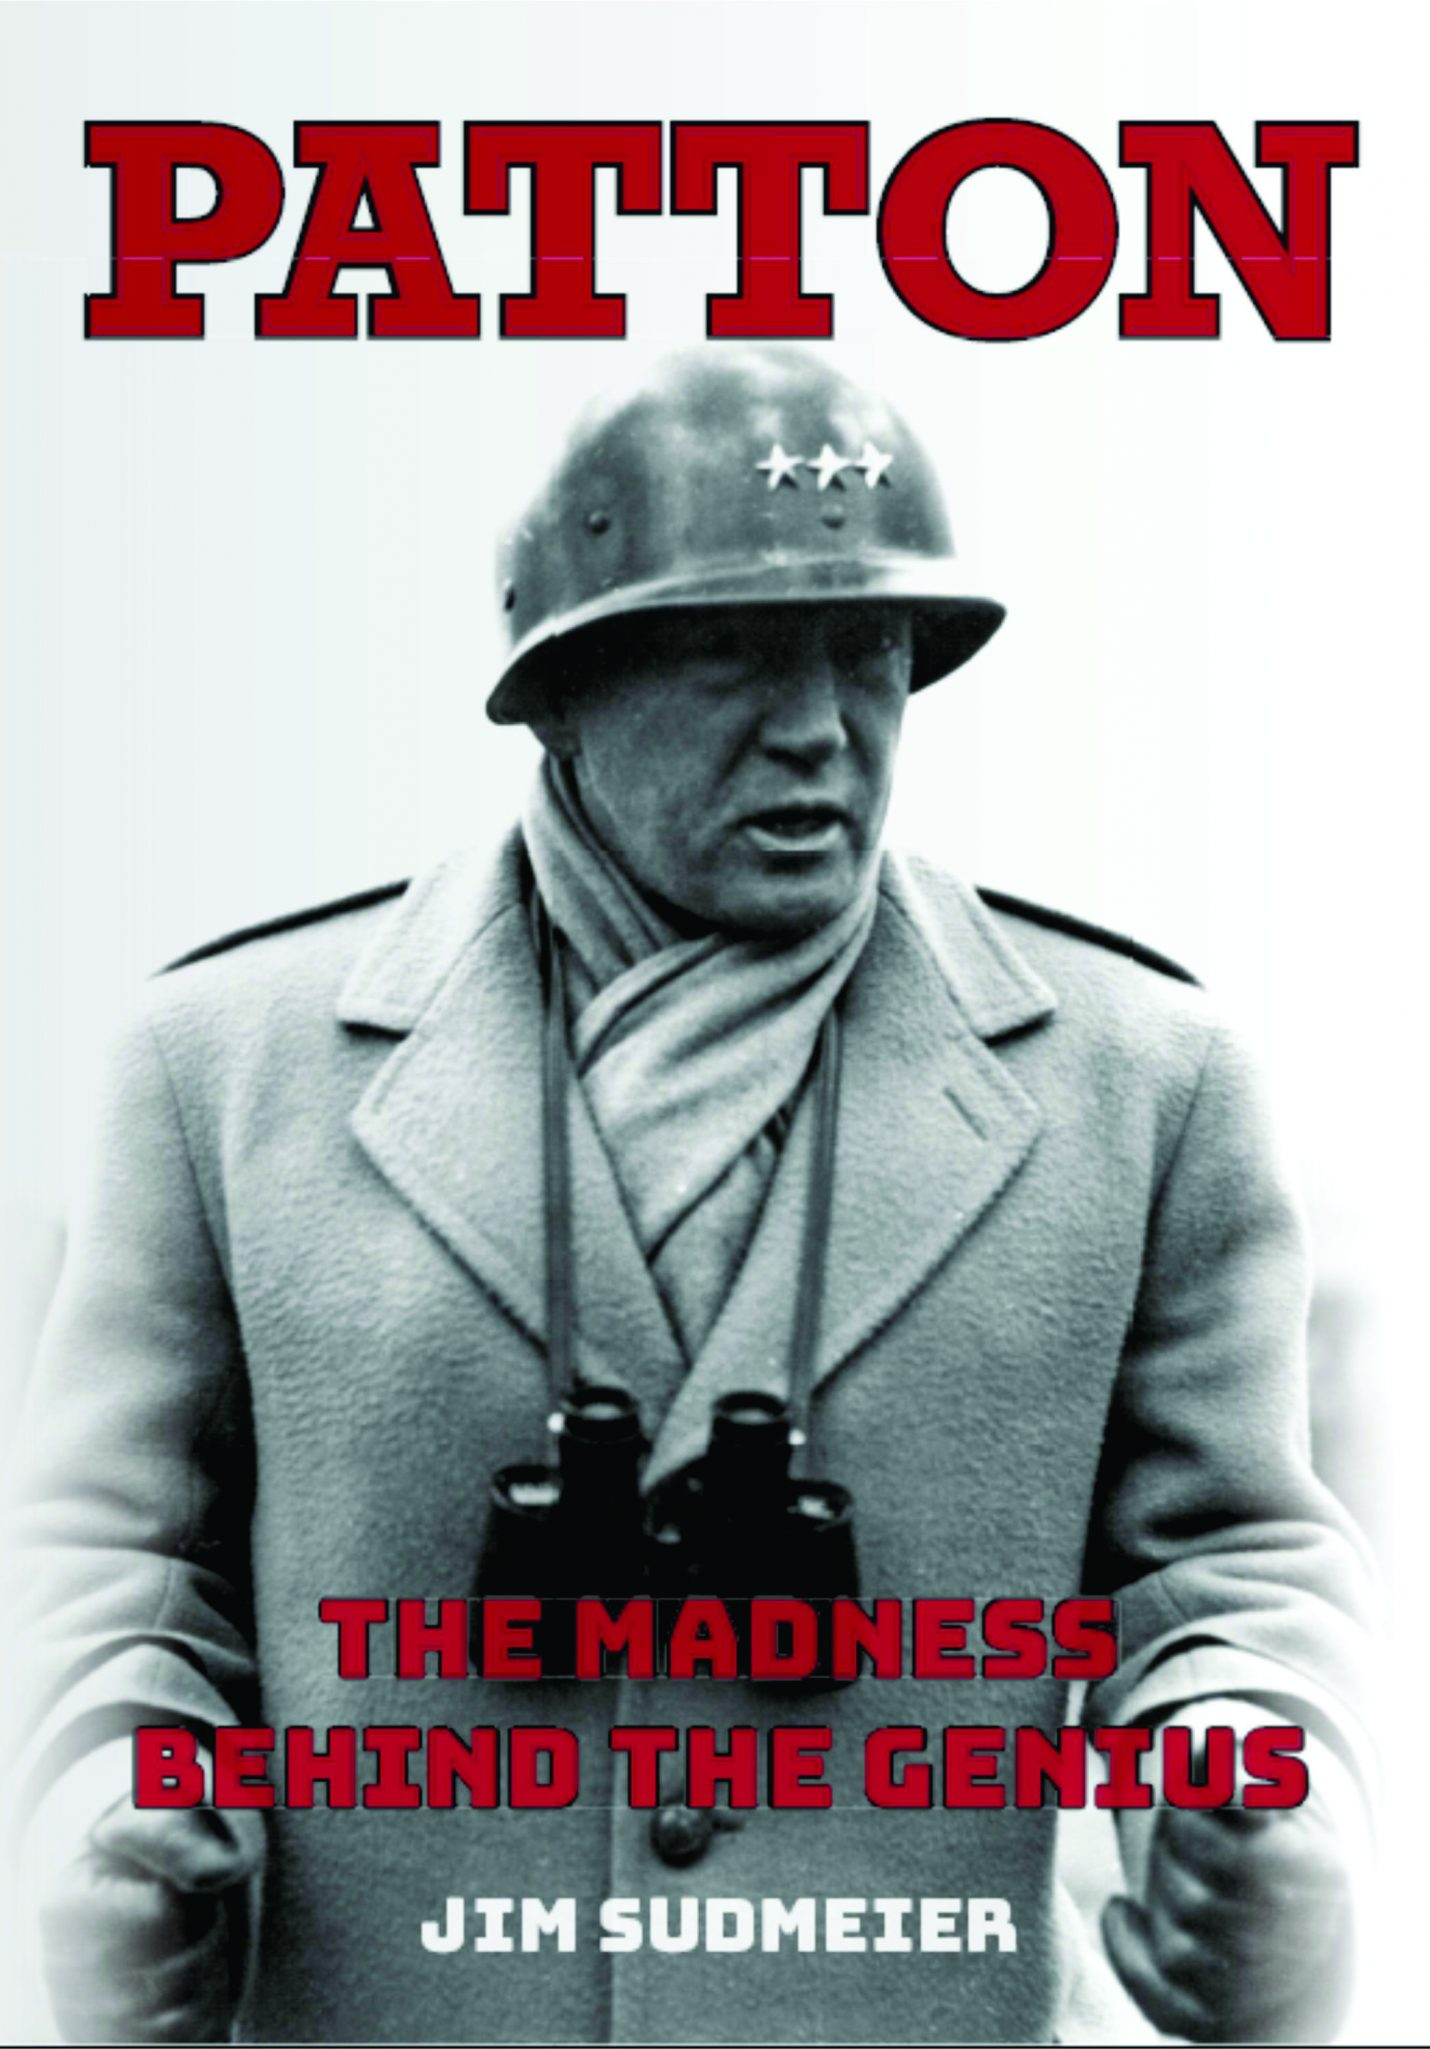 patton-book-no-spine